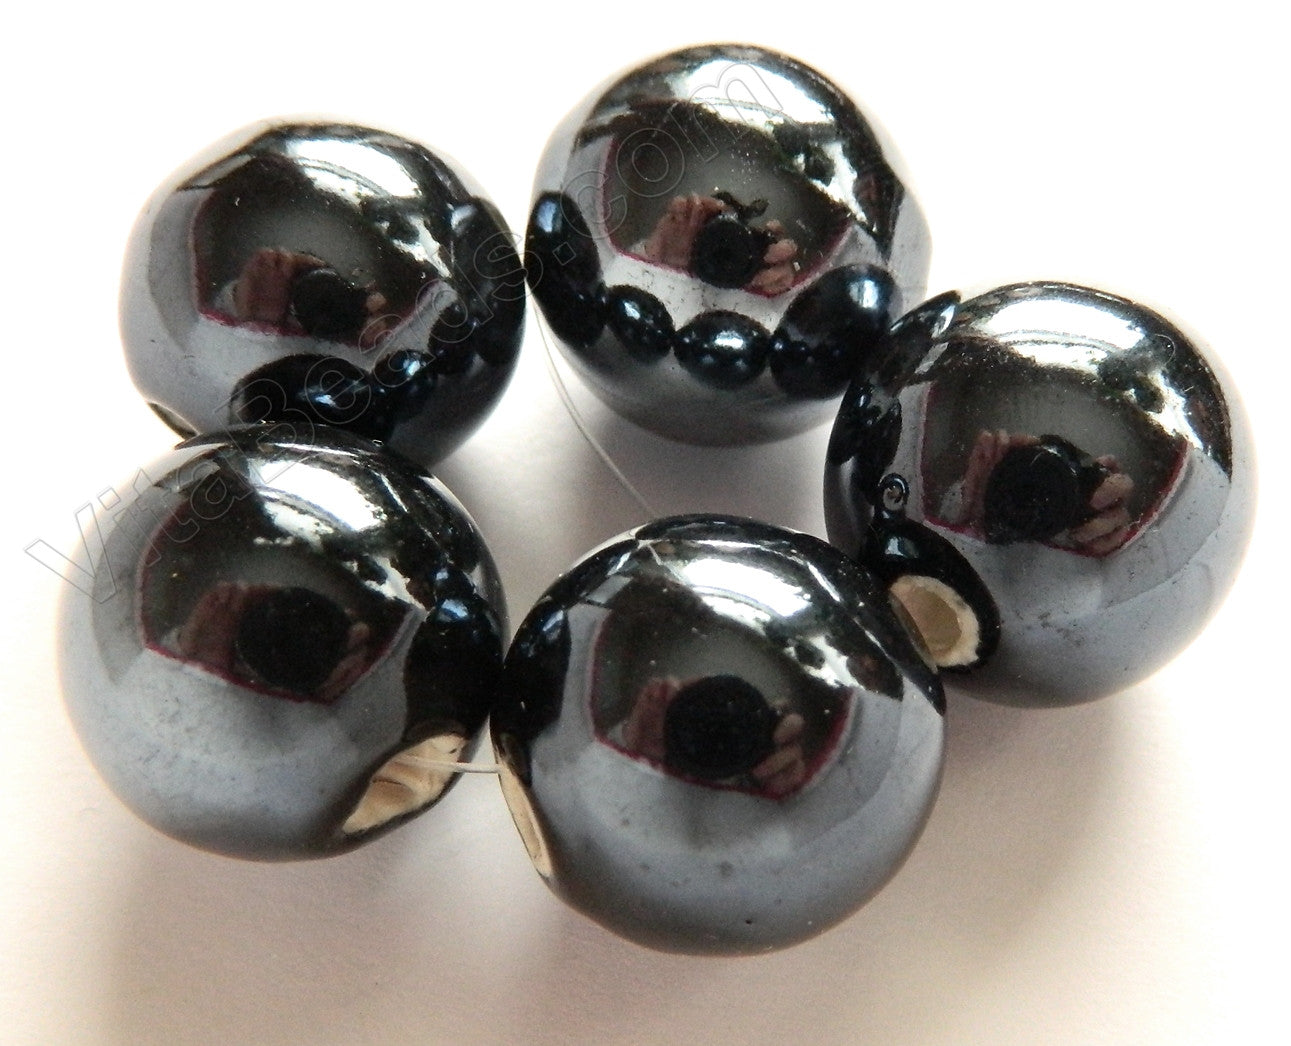 Porcelain Beads - Metallic Grey Coated Plated -  18mm Big Smooth Round Beads  5pc